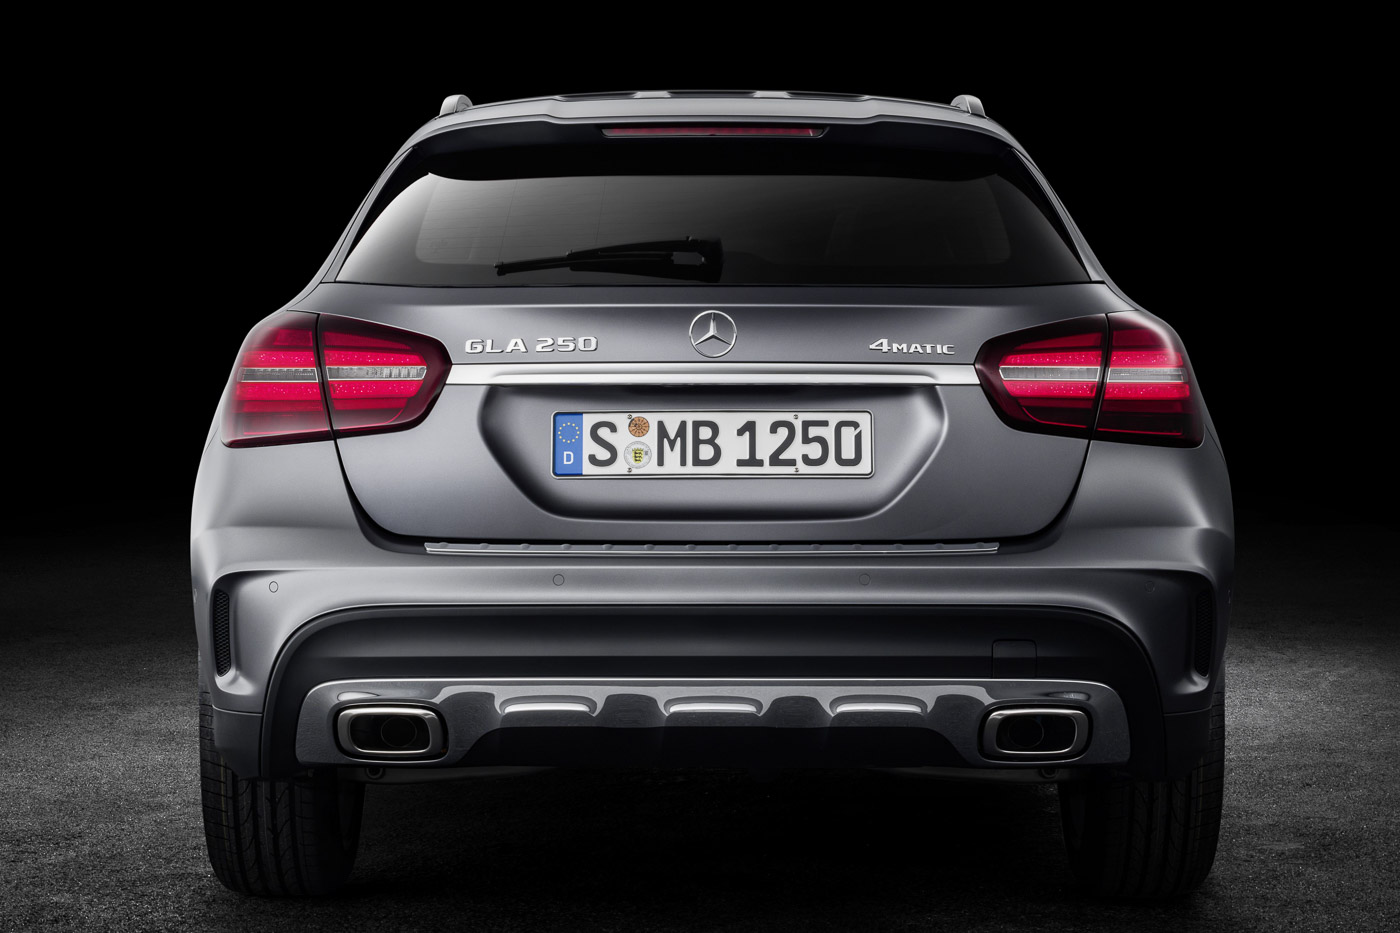 Night package is also a standard fitment on the GLA 250. It rides on 19-inch AMG lightweight alloy wheels.